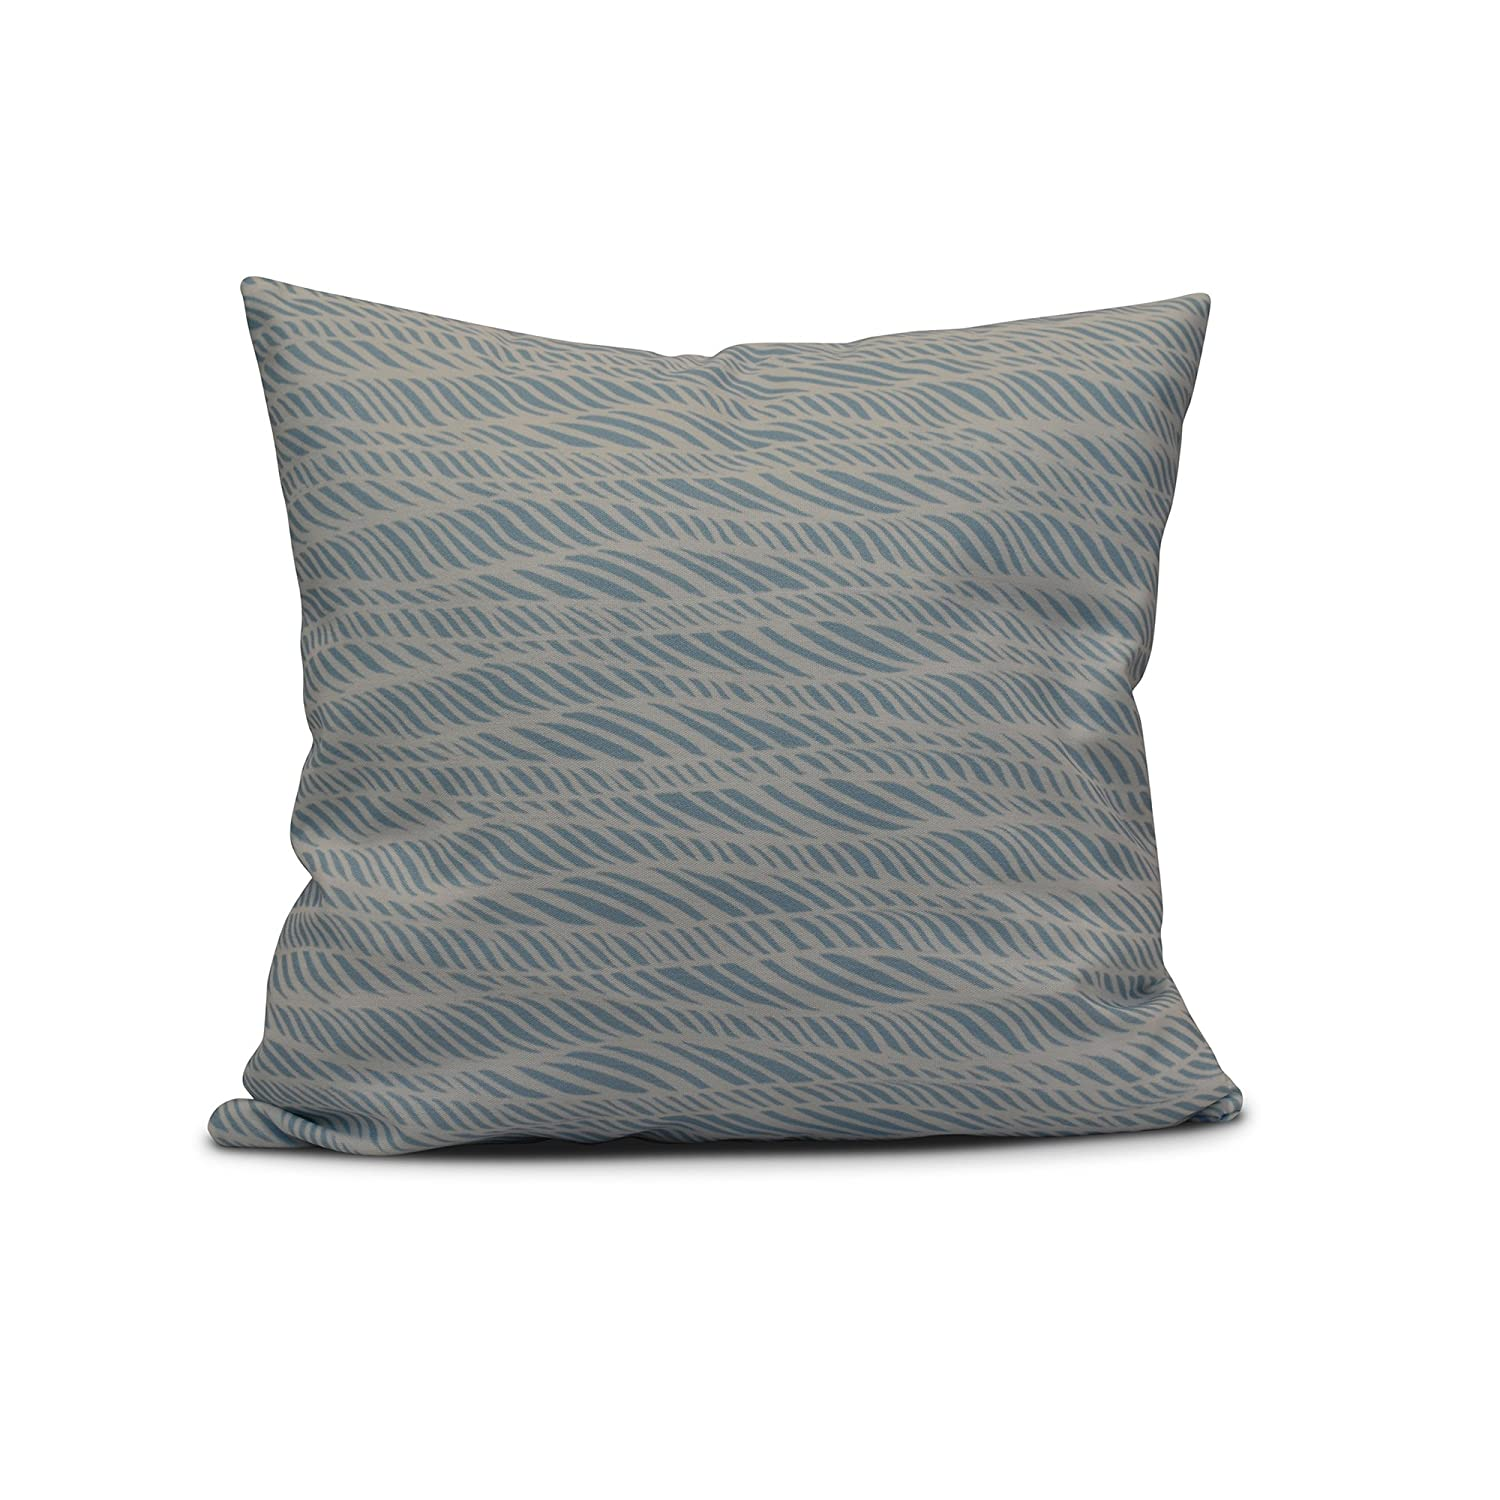 Benzara BM177979 Contemporary Style Simple Traditionally Designed Throw Pillows Multicolor Set of Two